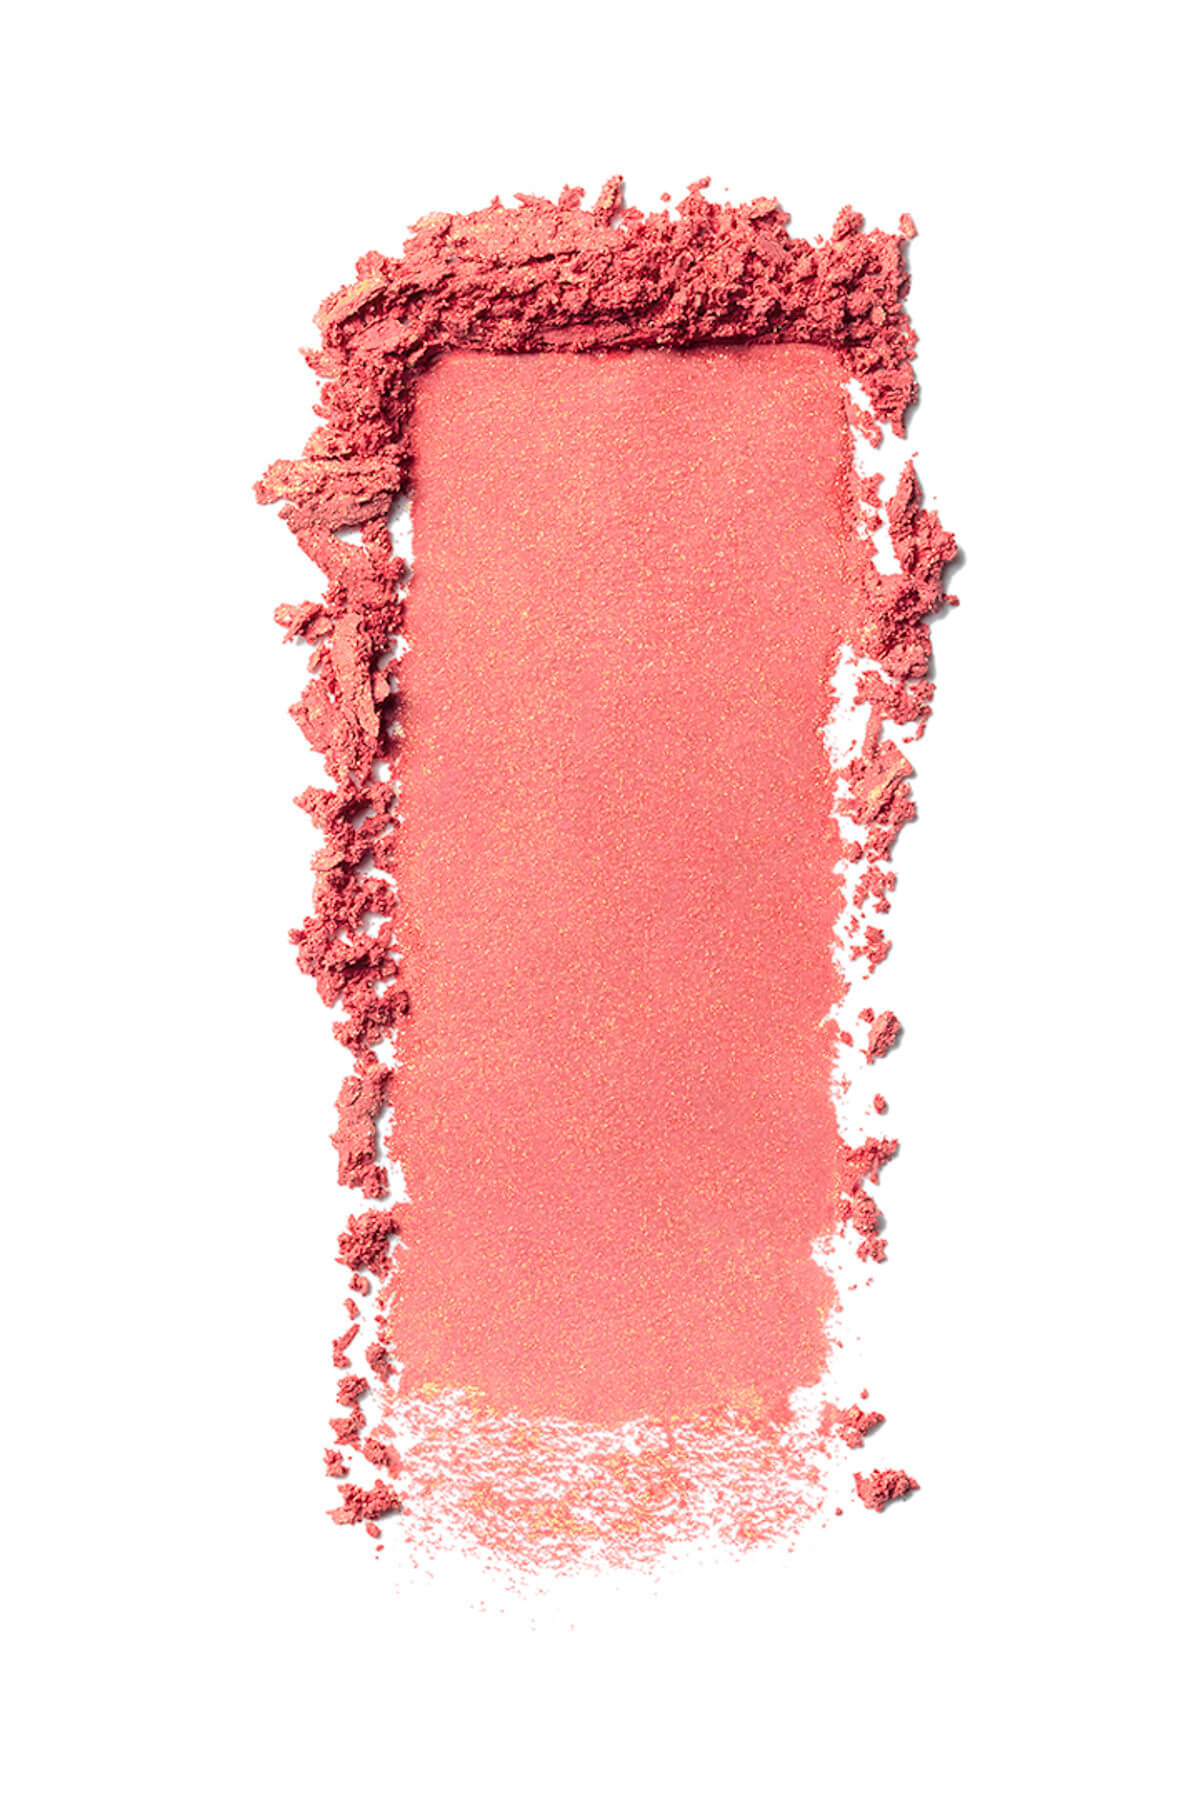 BOBBI BROWN Allık - Shimmer Blush Coral 4 g 716170059860 2